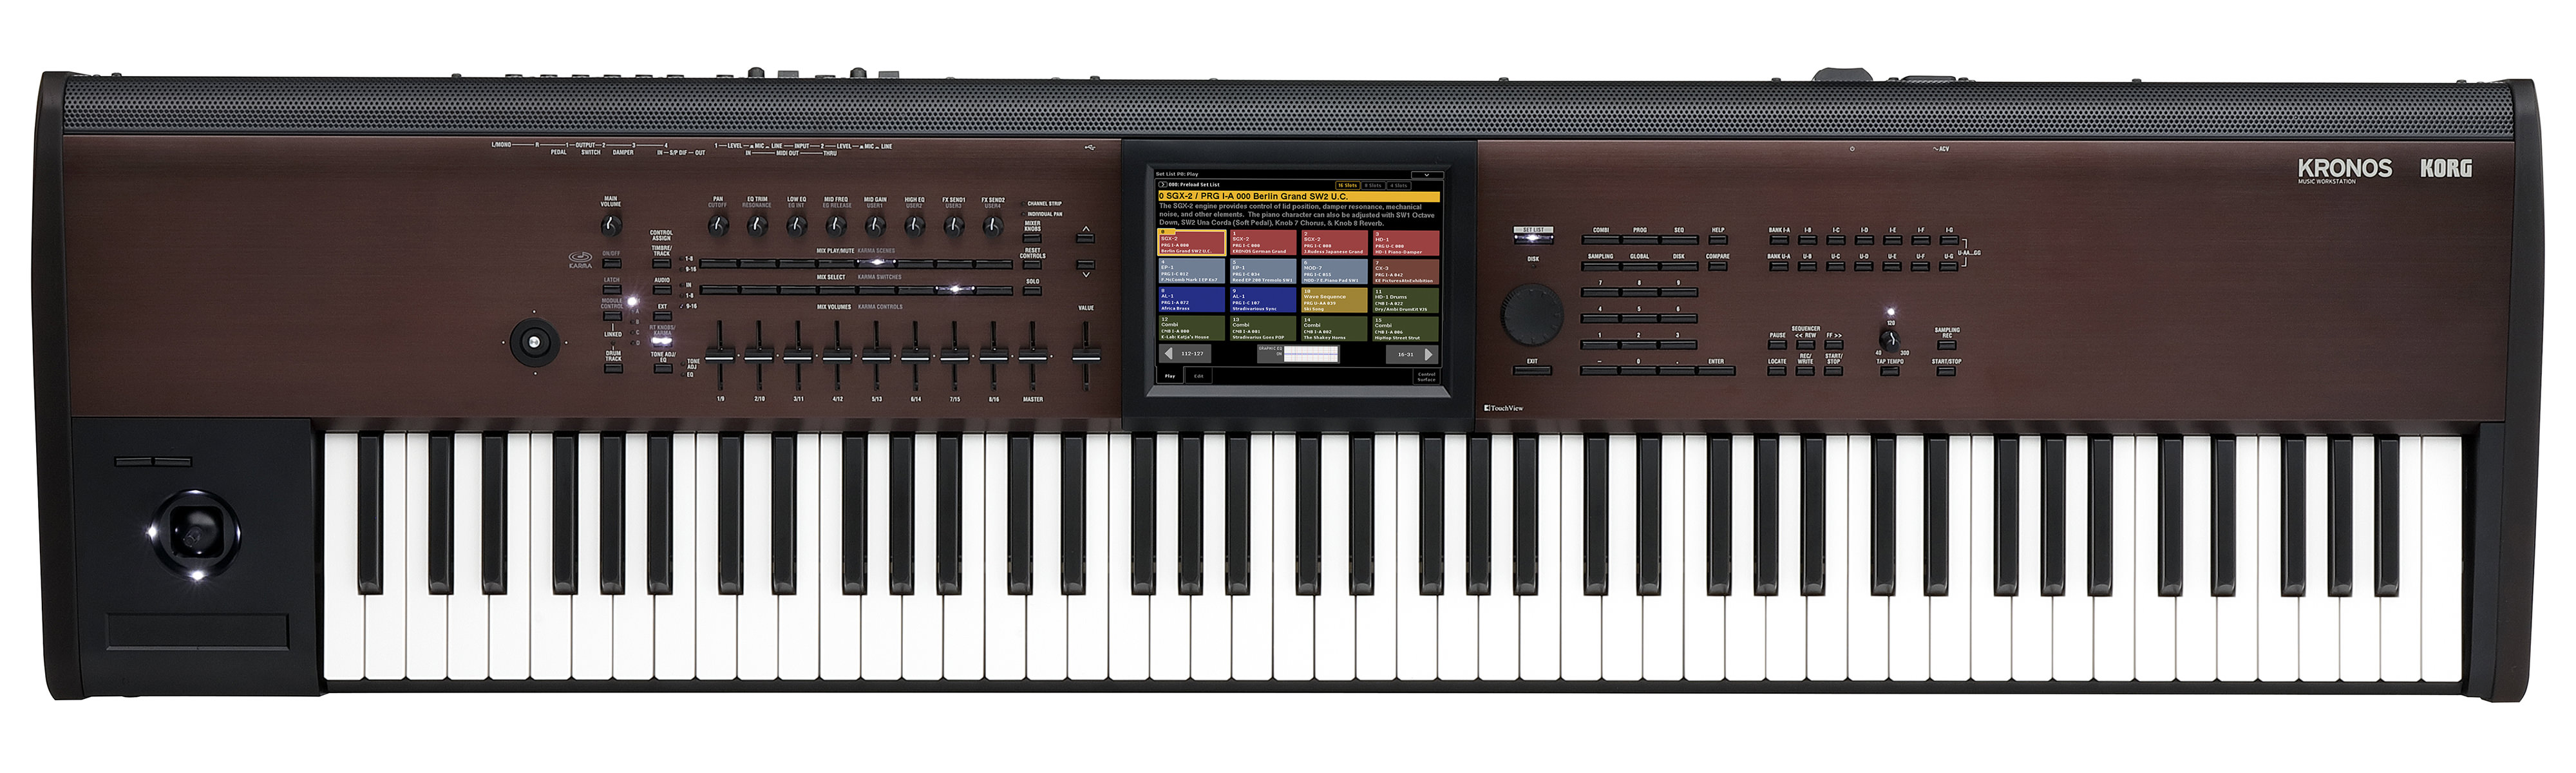 Kronos LS from Korg offers a lighter alternative with all of the power